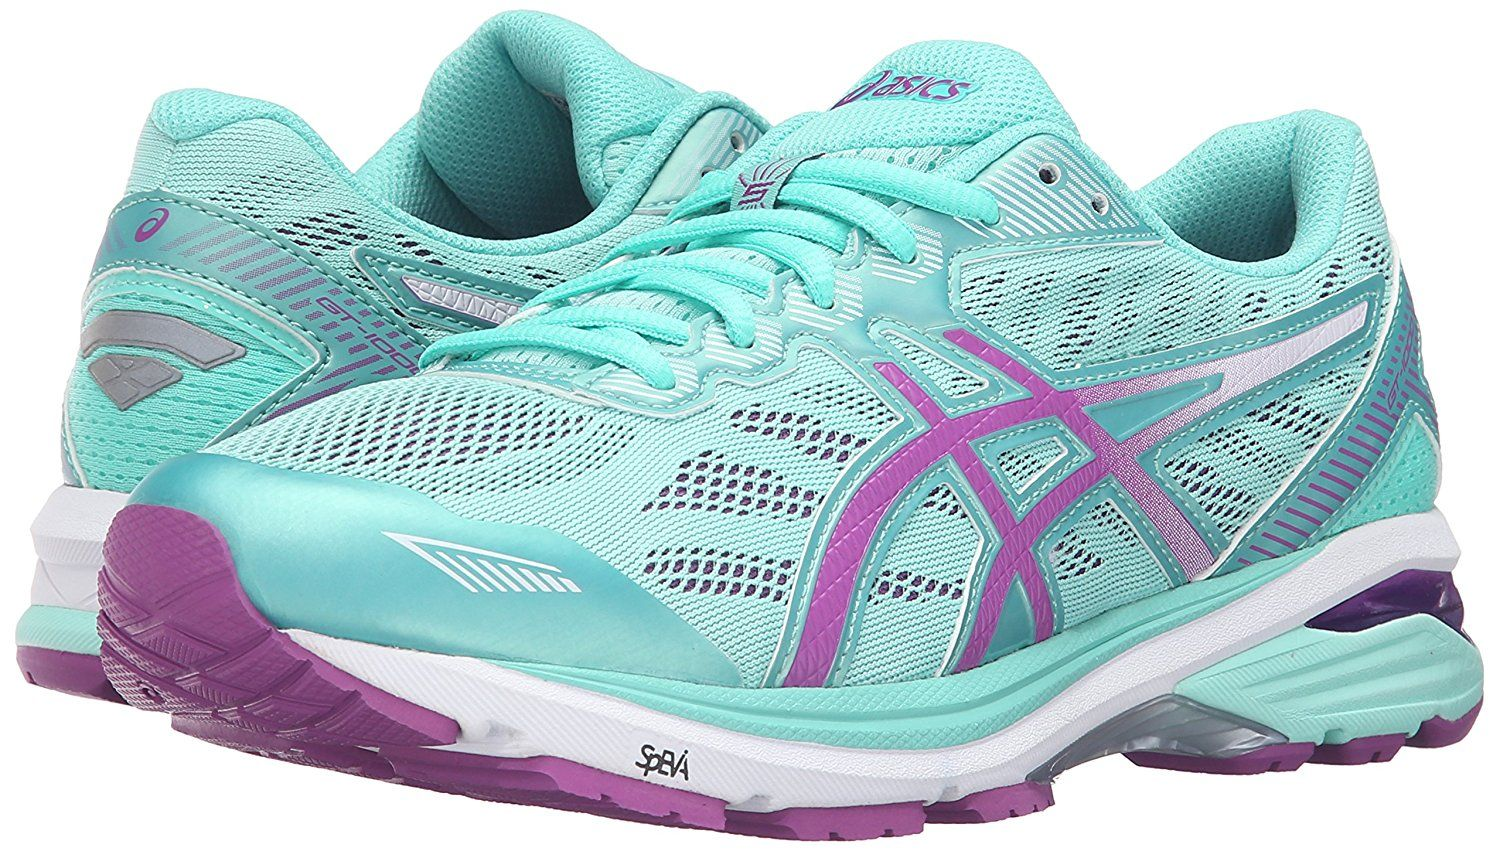 Asics Women S Gt 1000 5 Running Shoe Is One Of The Best Walking Shoes For Flat Feet Watch More B Best Walking Shoes Womens Running Shoes Womens Athletic Shoes